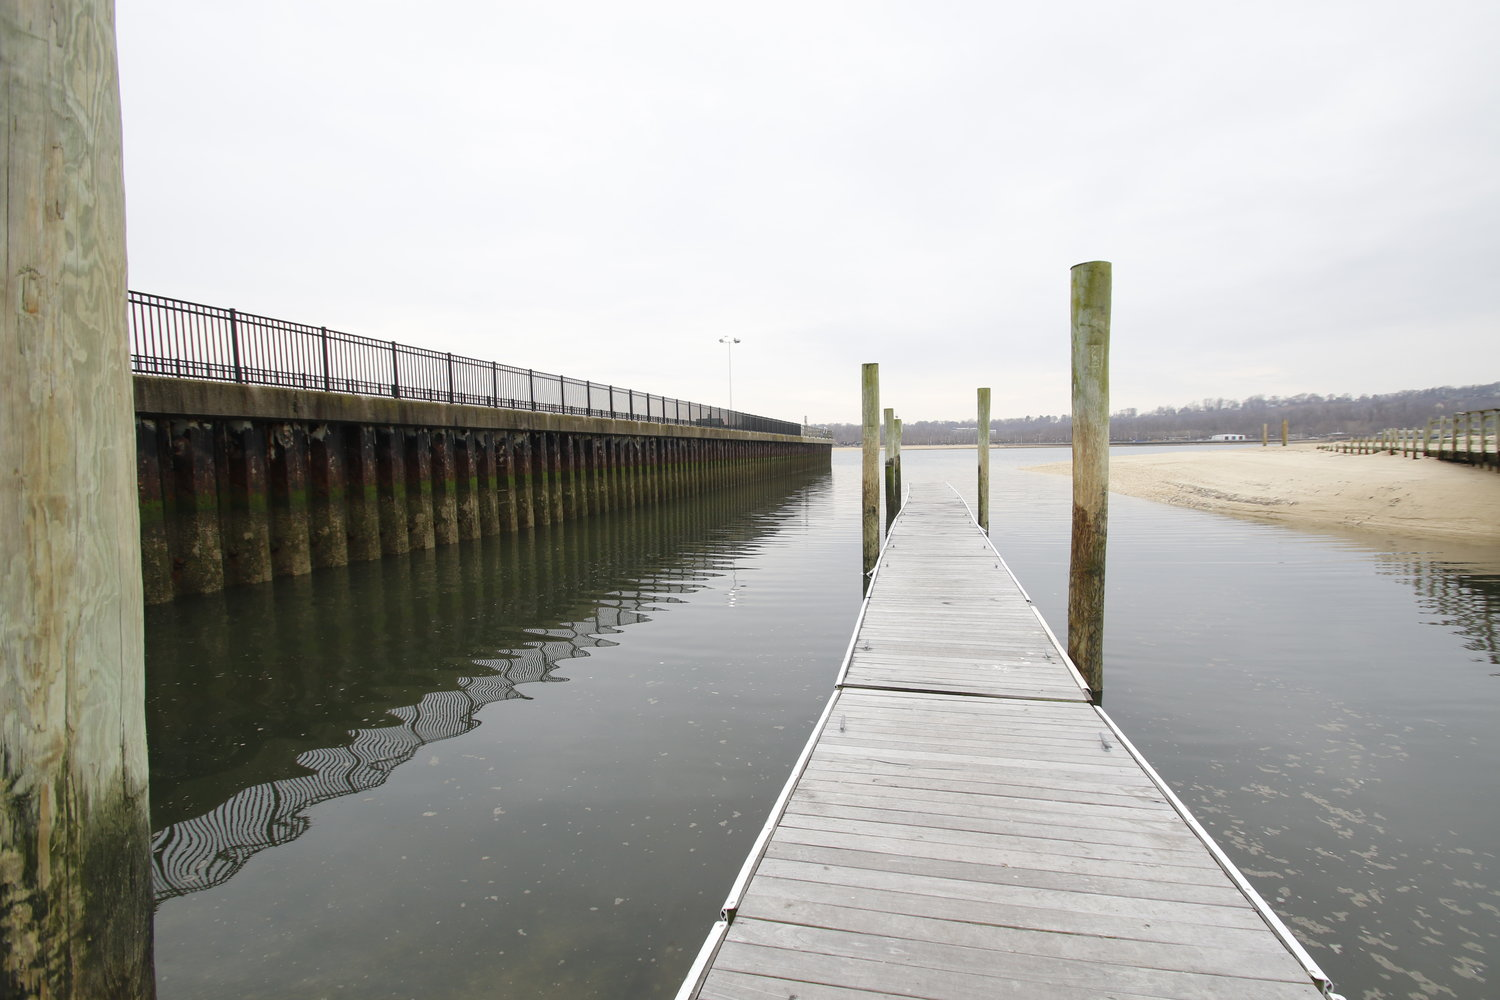 Town of Oyster Bay officials said they hope to prevent pollution of the water at Tappen Beach by septic system failures.